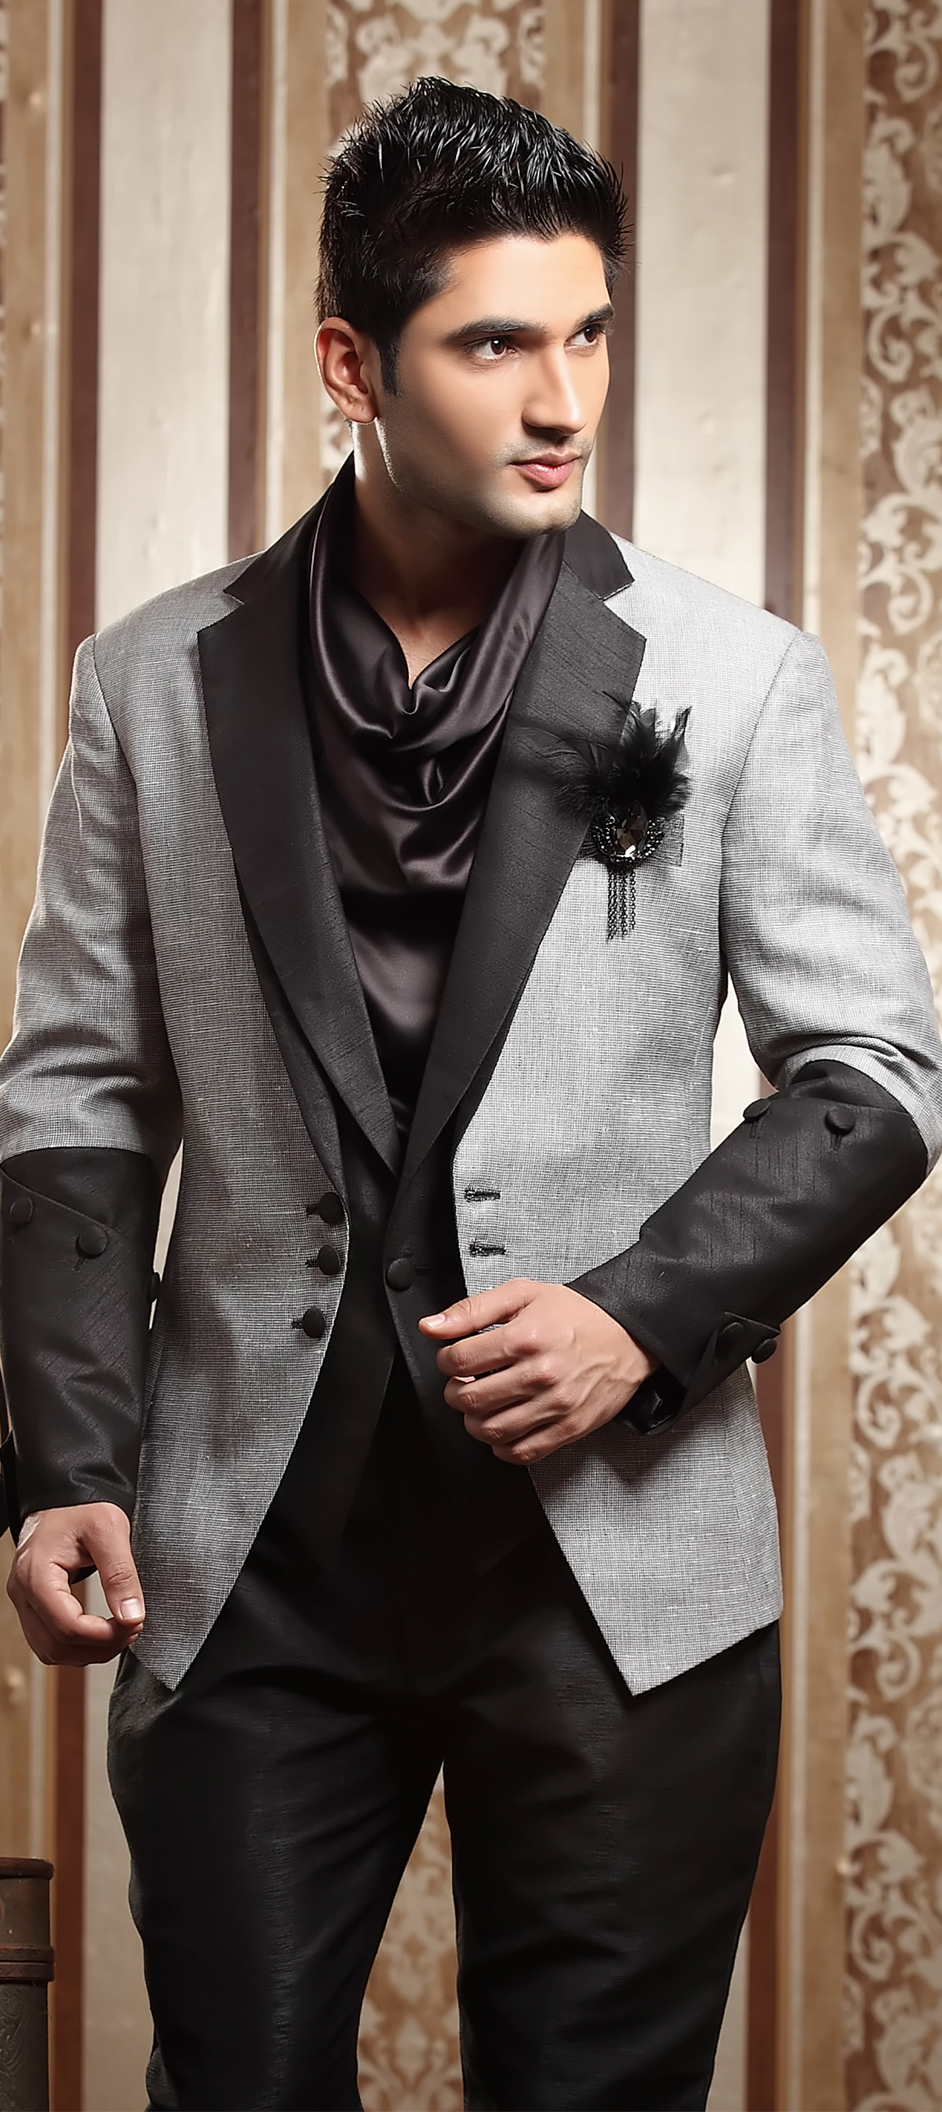 wedding dresses for men | Wedding